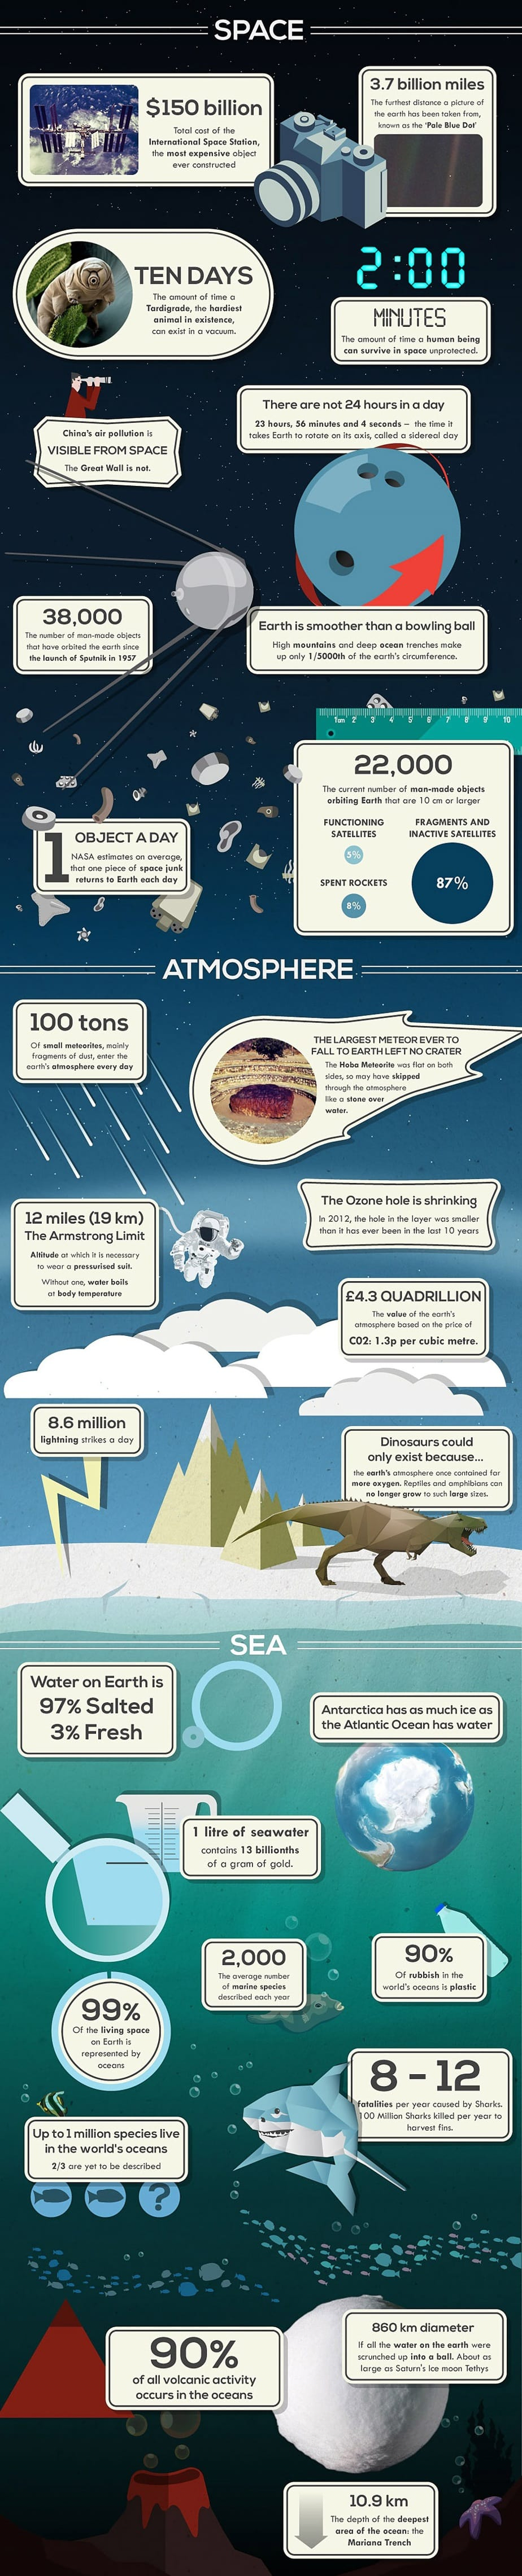 Earth Facts 1